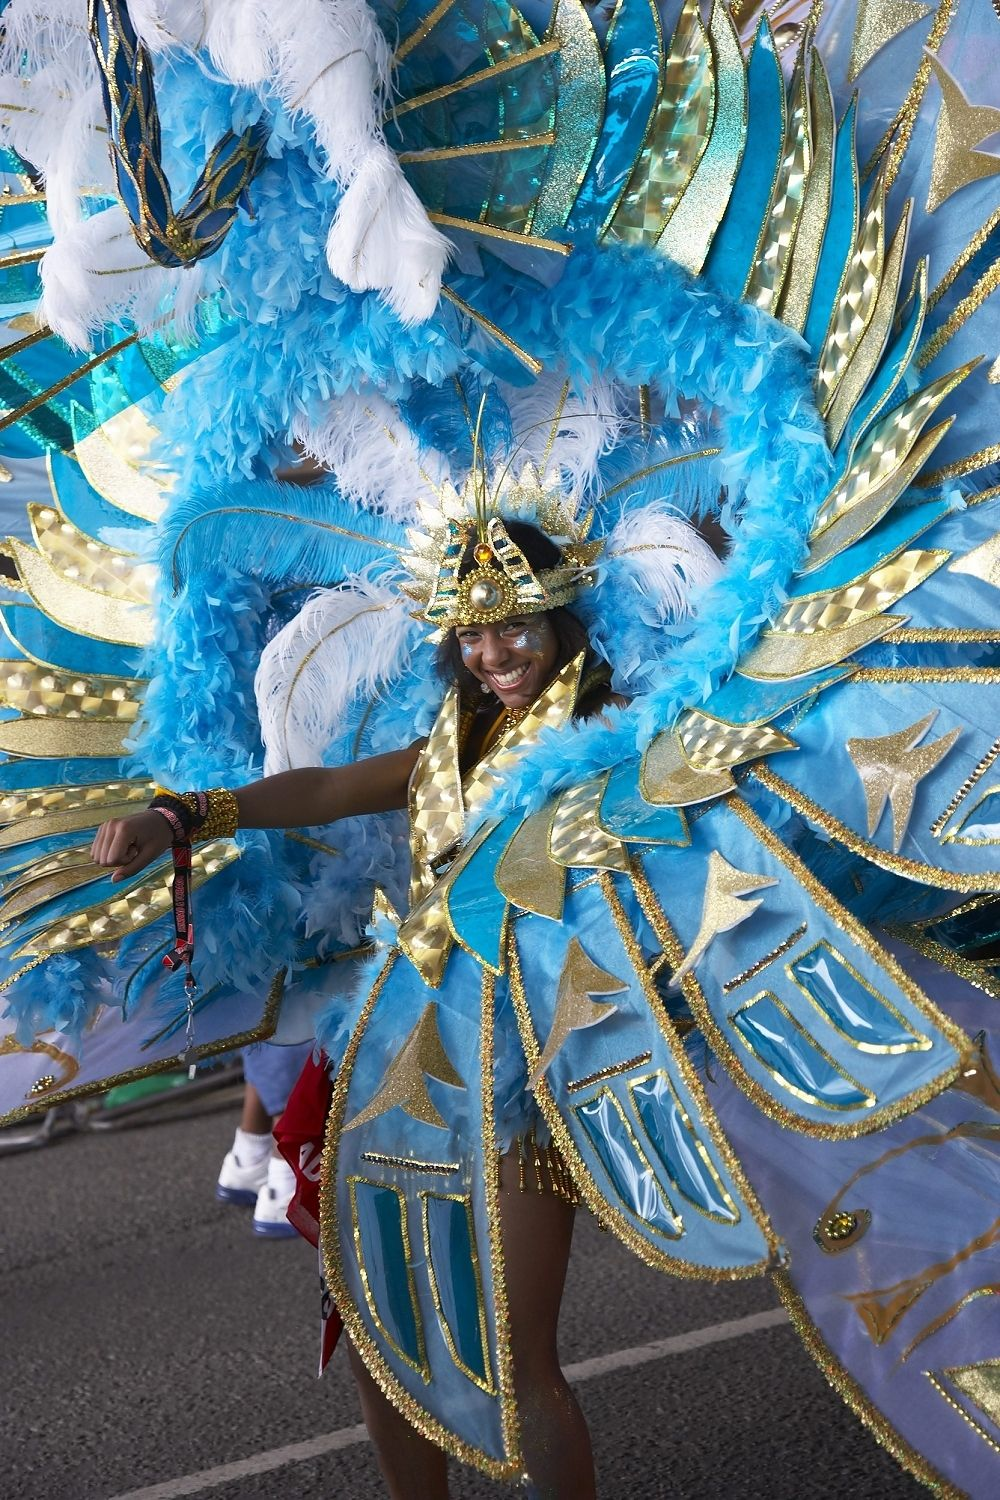 101 things to do in london in 2020  carnival costumes